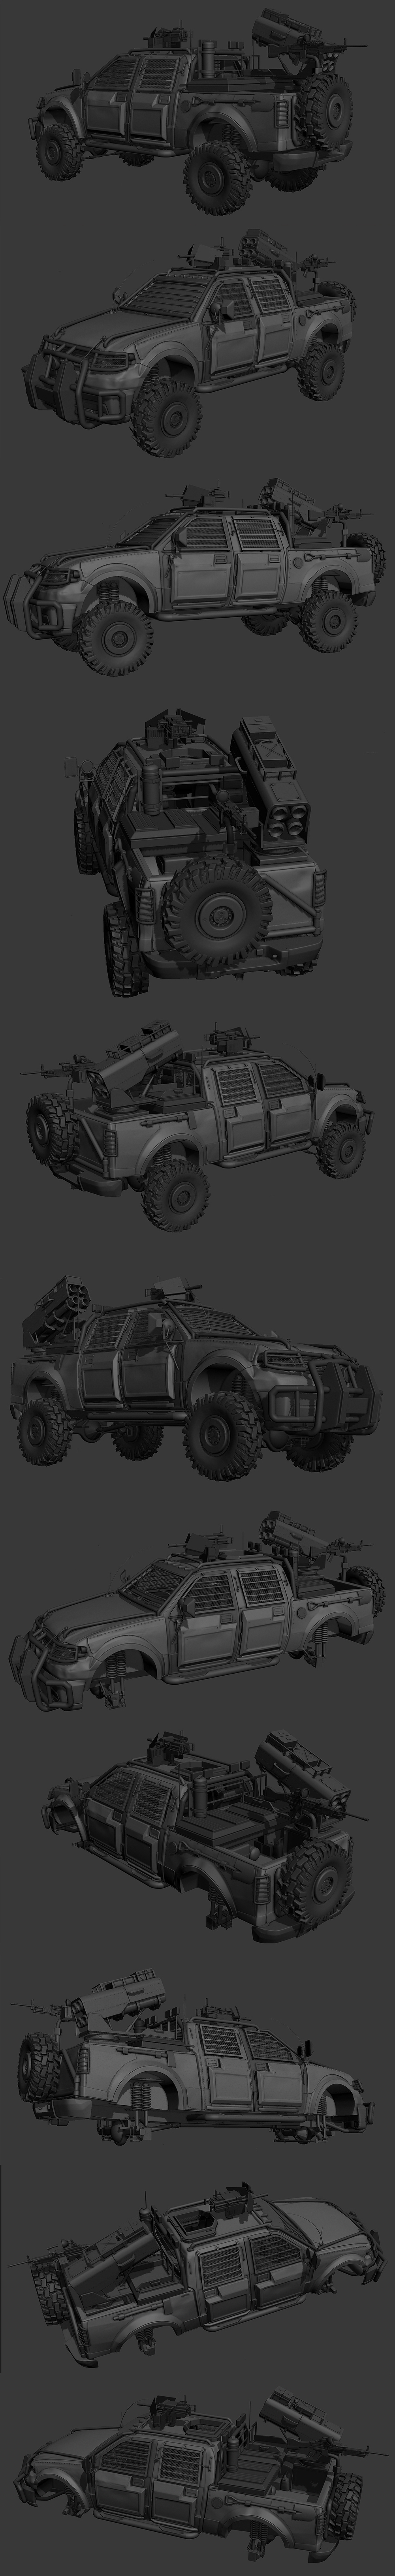 armoredtruck_highpoly.jpg